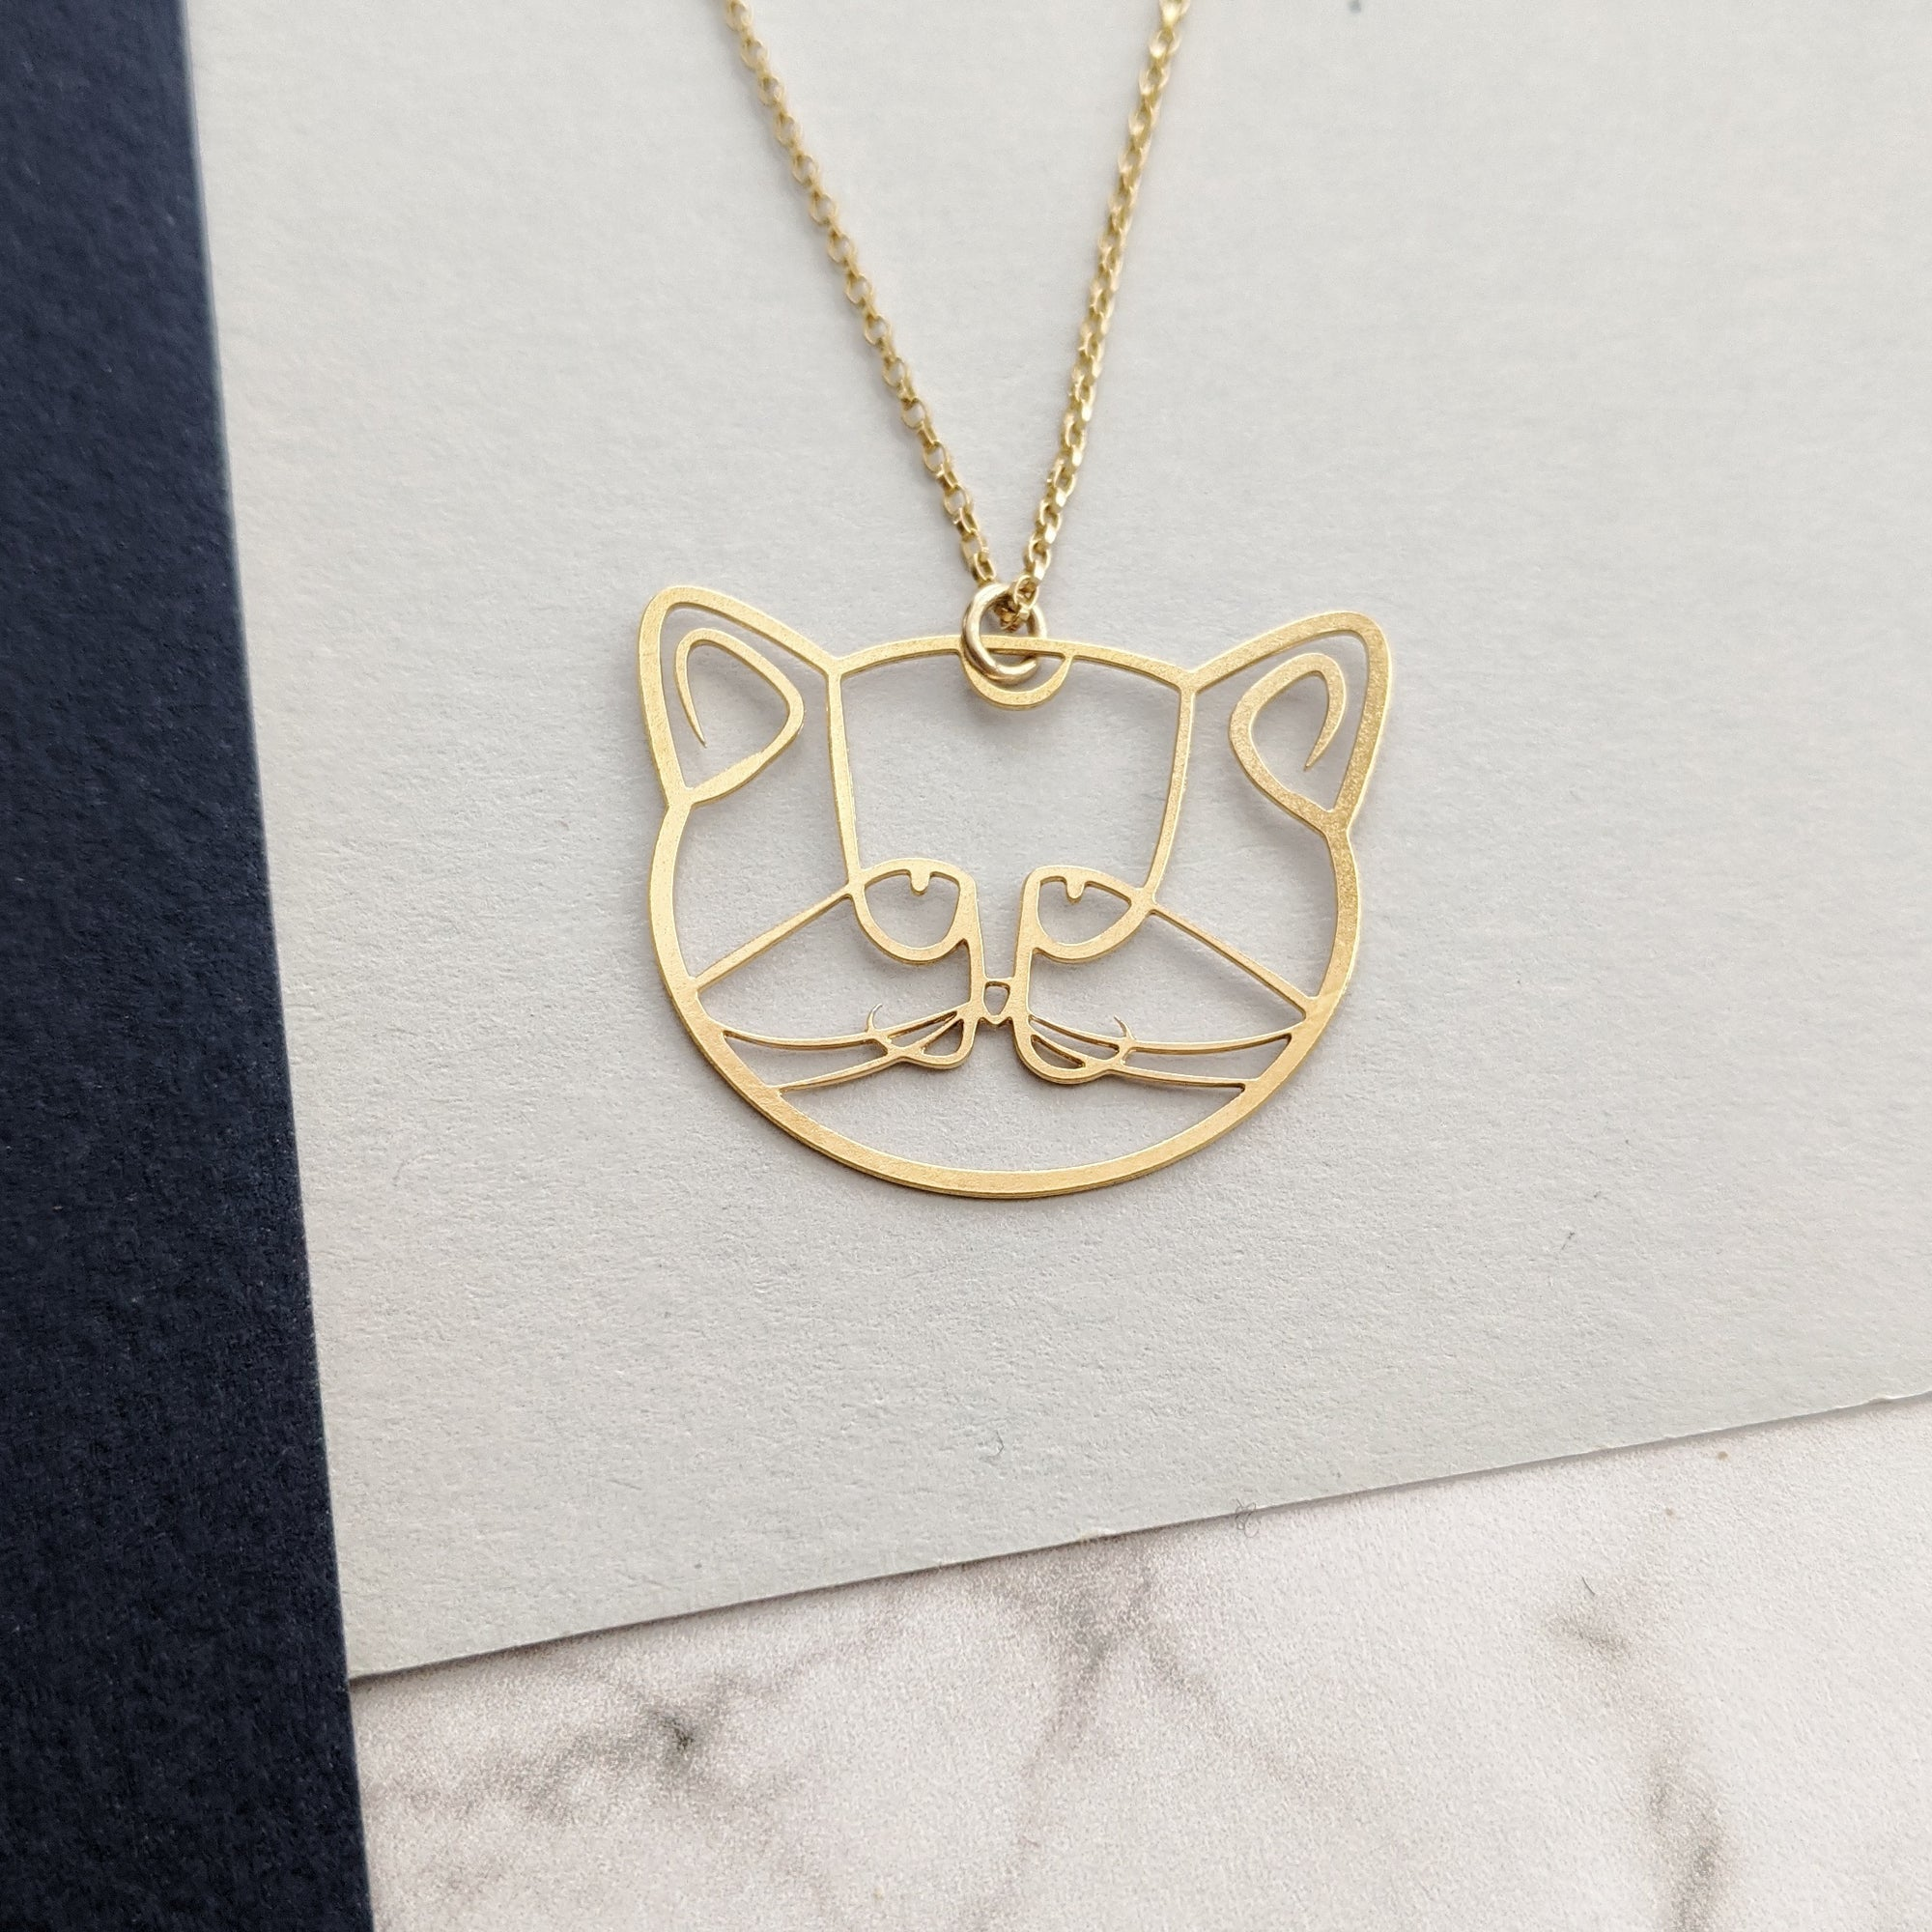 pieceofka cat necklace